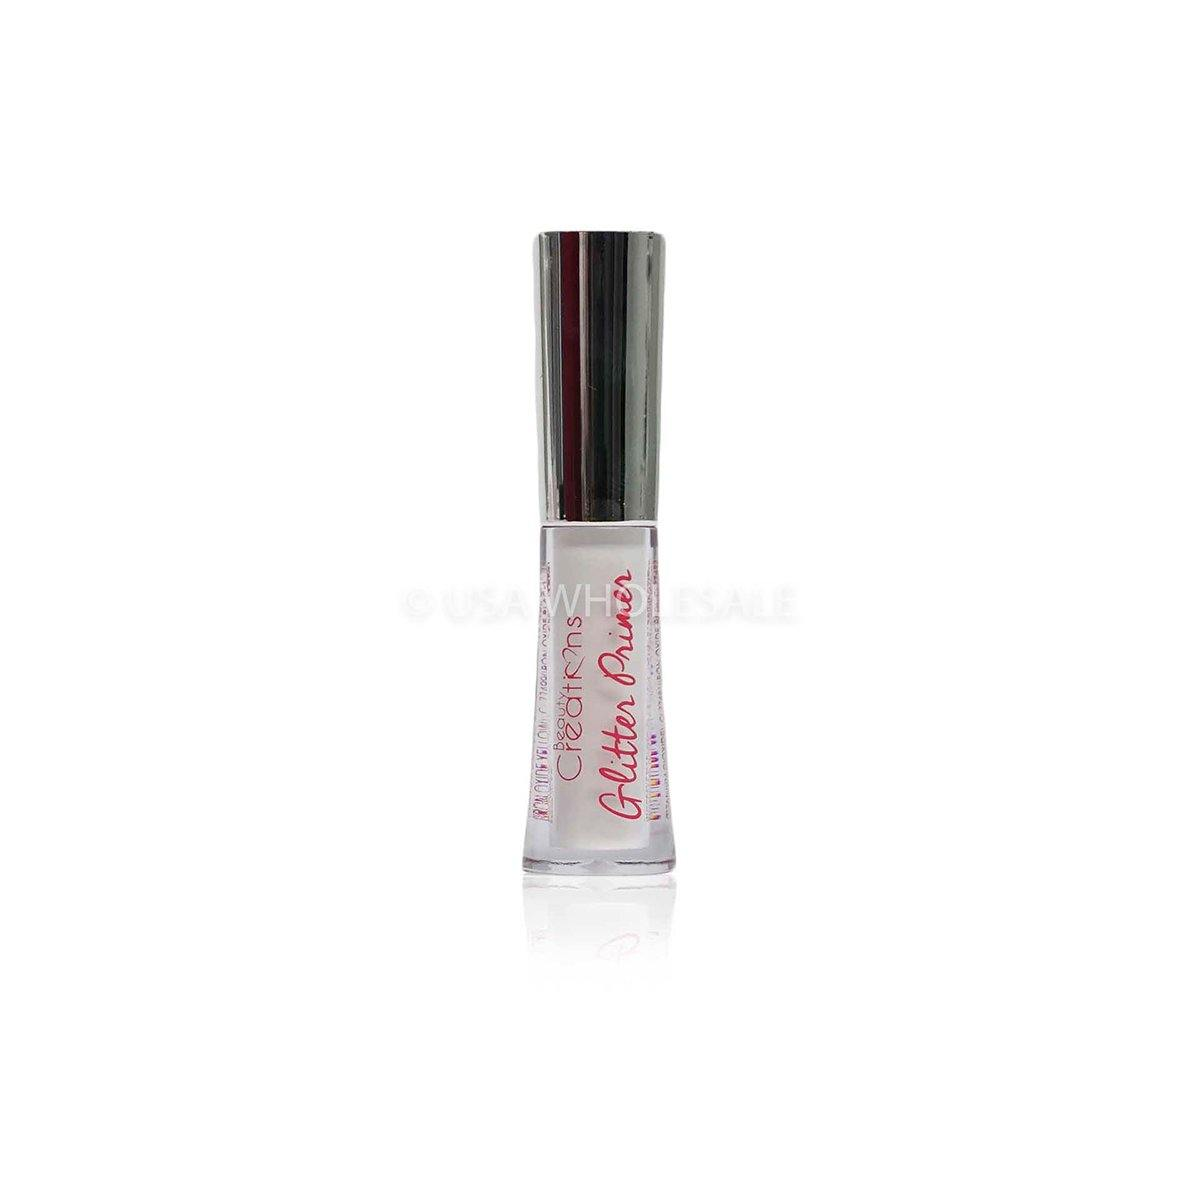 BEAUTY CREATIONS | Splash of Glitters Primer Cream (Case of 24)